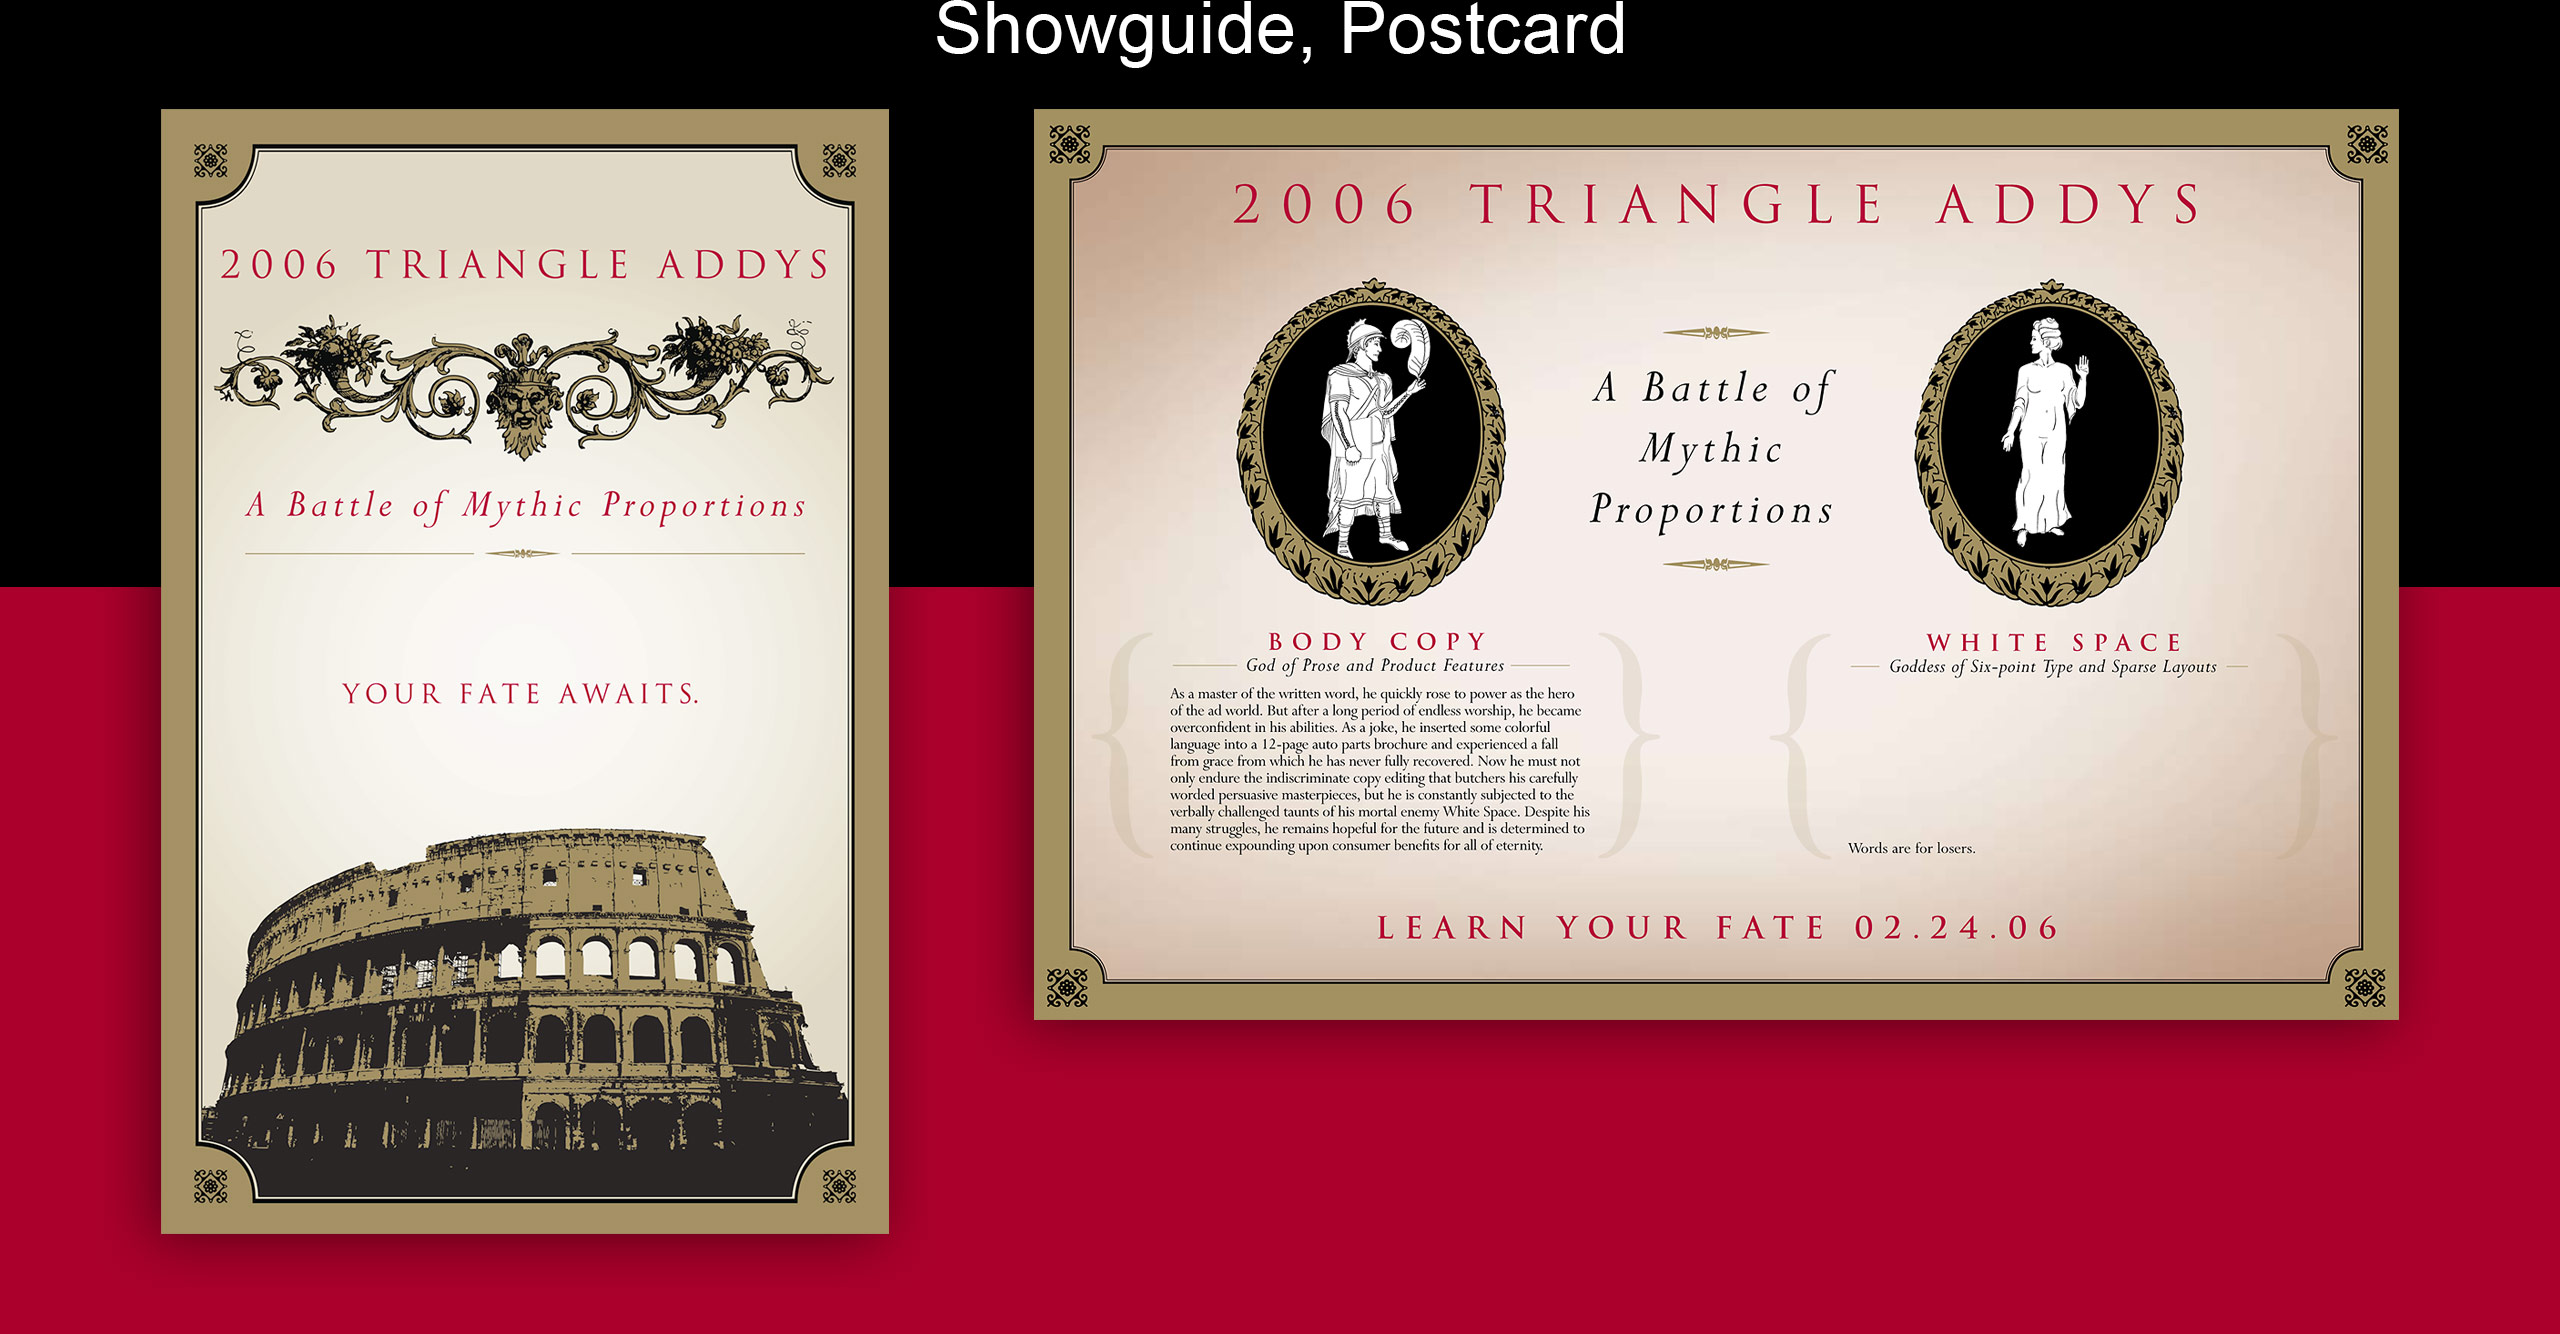 addys showguide and postcard